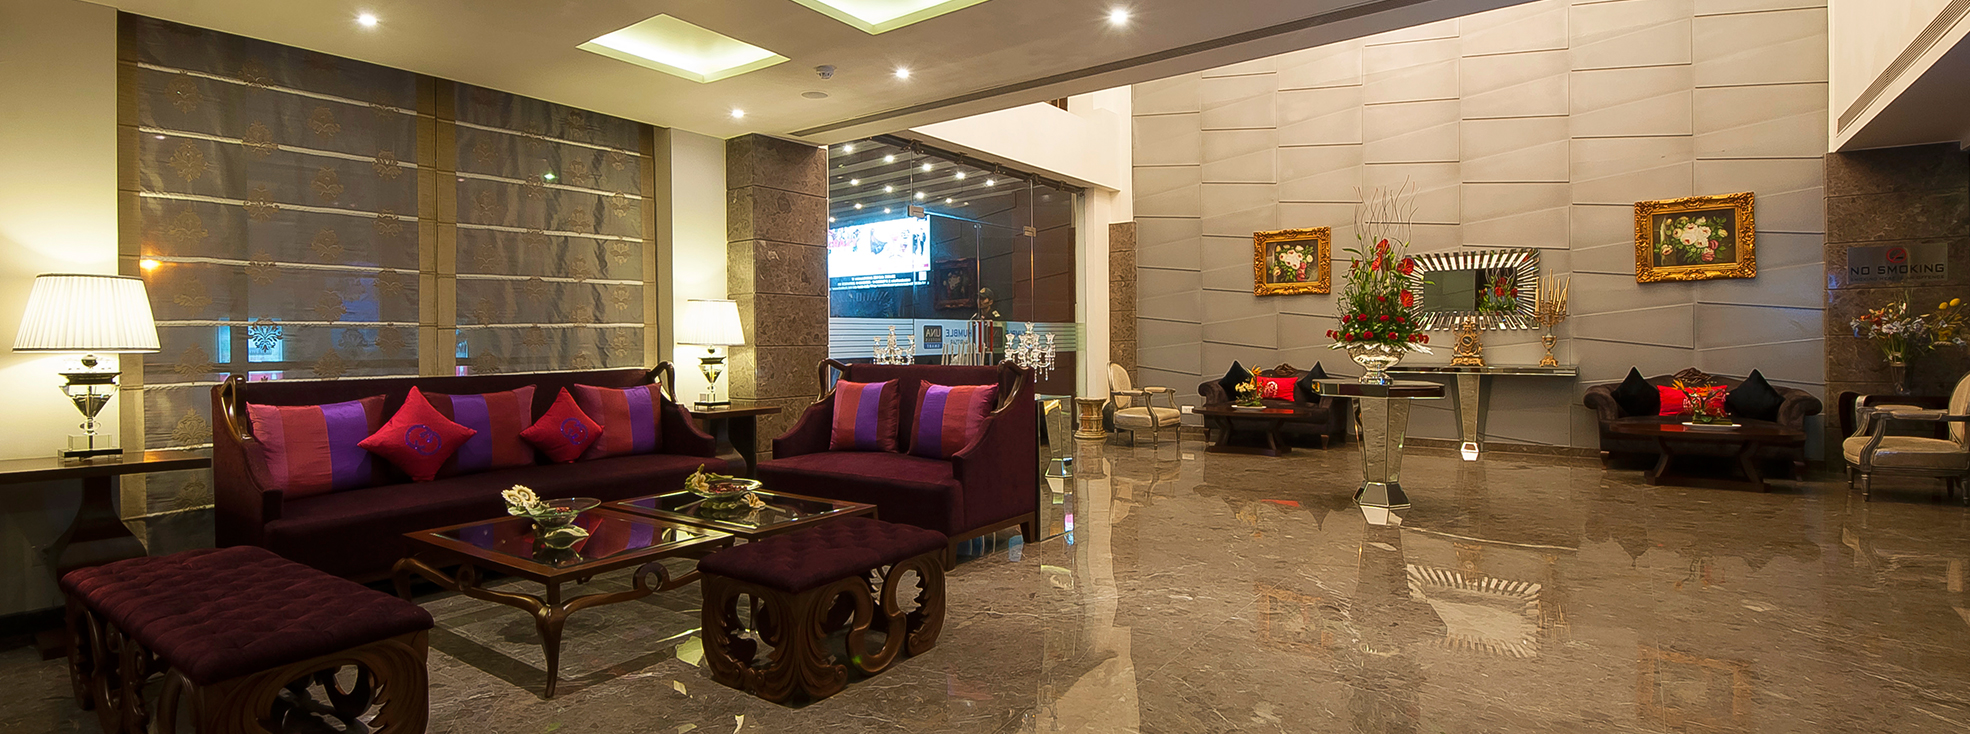 4 star hotels in amritsar